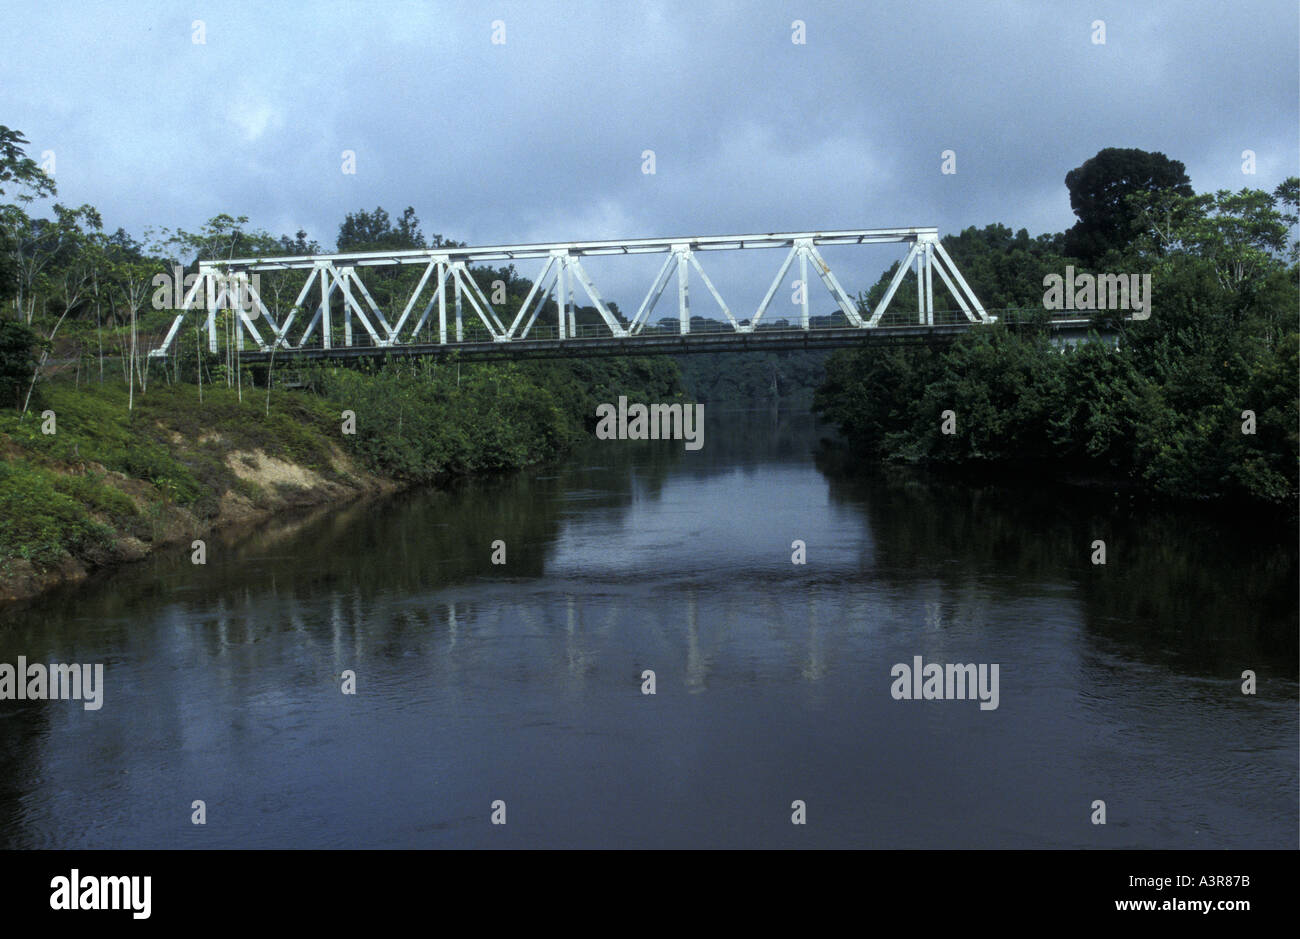 Railway bridge on the transgabonese railway Gabon West Africa - Stock Image